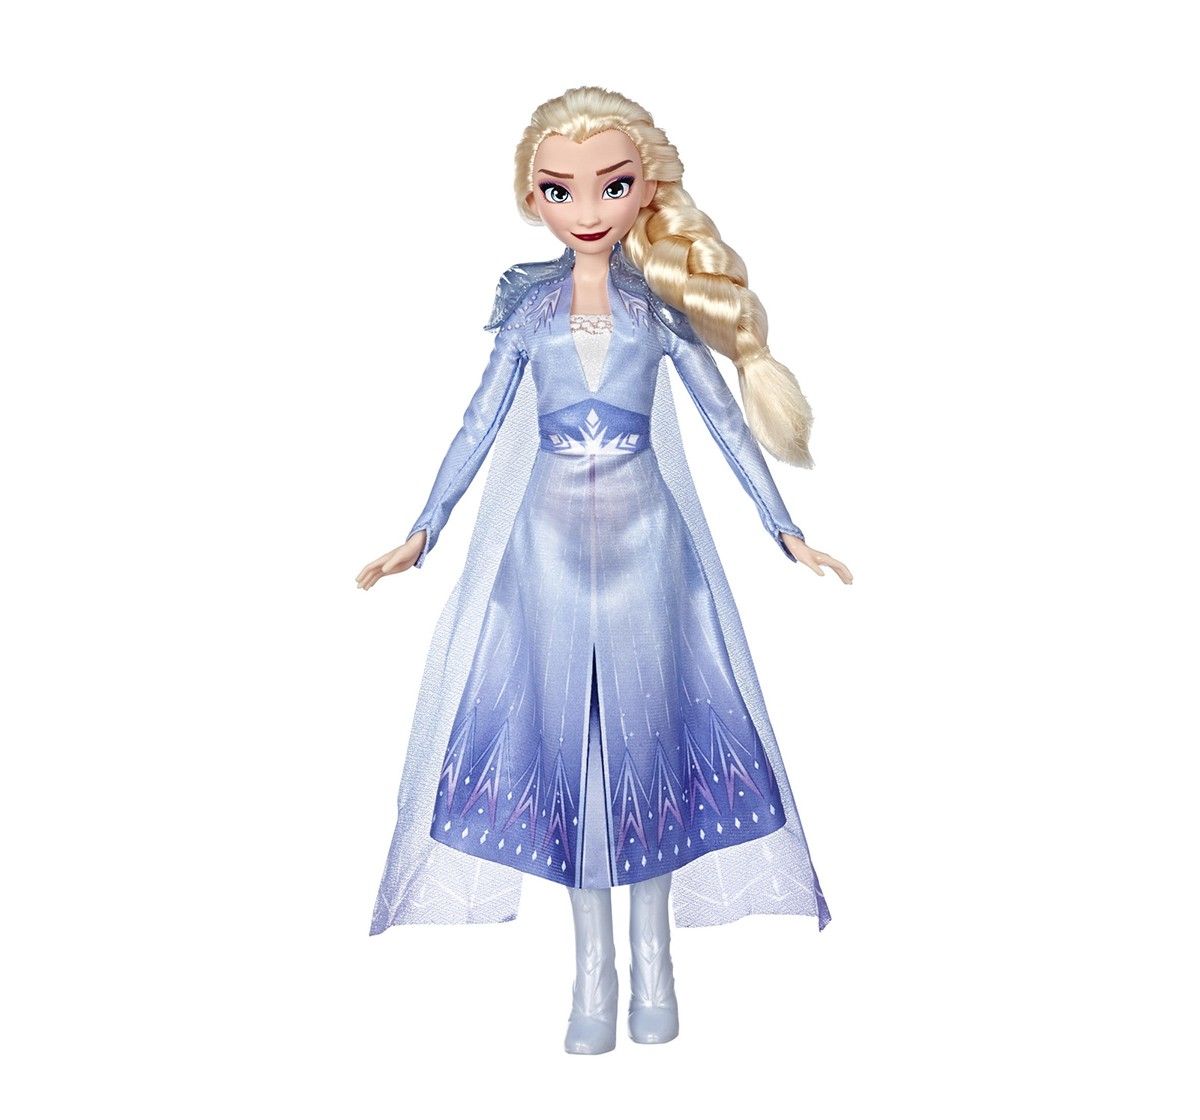 Disney Frozen 2 Elsa Fashion Doll With Long Blonde Hair And Blue Outfit Inspired By Frozen 2  Dolls & Accessories for Girls age 3Y+